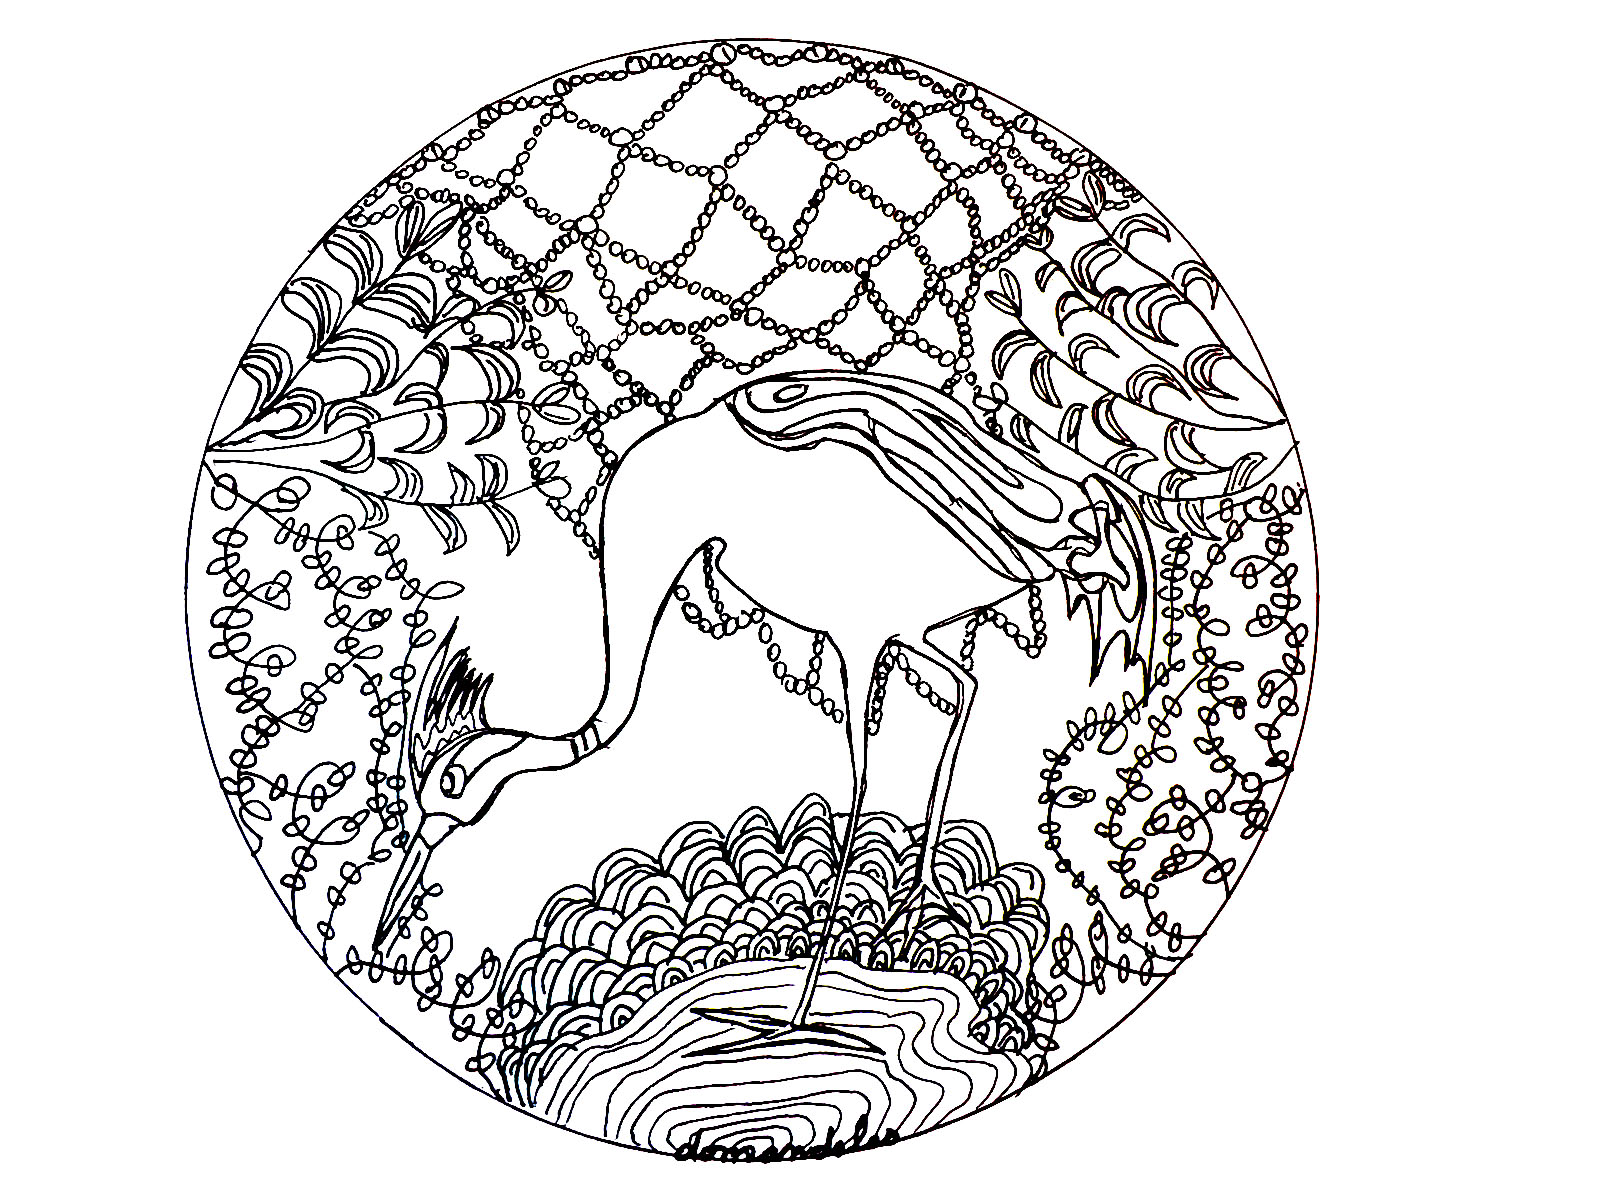 The Heron : a beautiful Mandala coloring page, of great quality and originality. It's up to you to choose the most appropriate colors. You must clear your mind and allow yourself to forget all your worries and responsibilities.